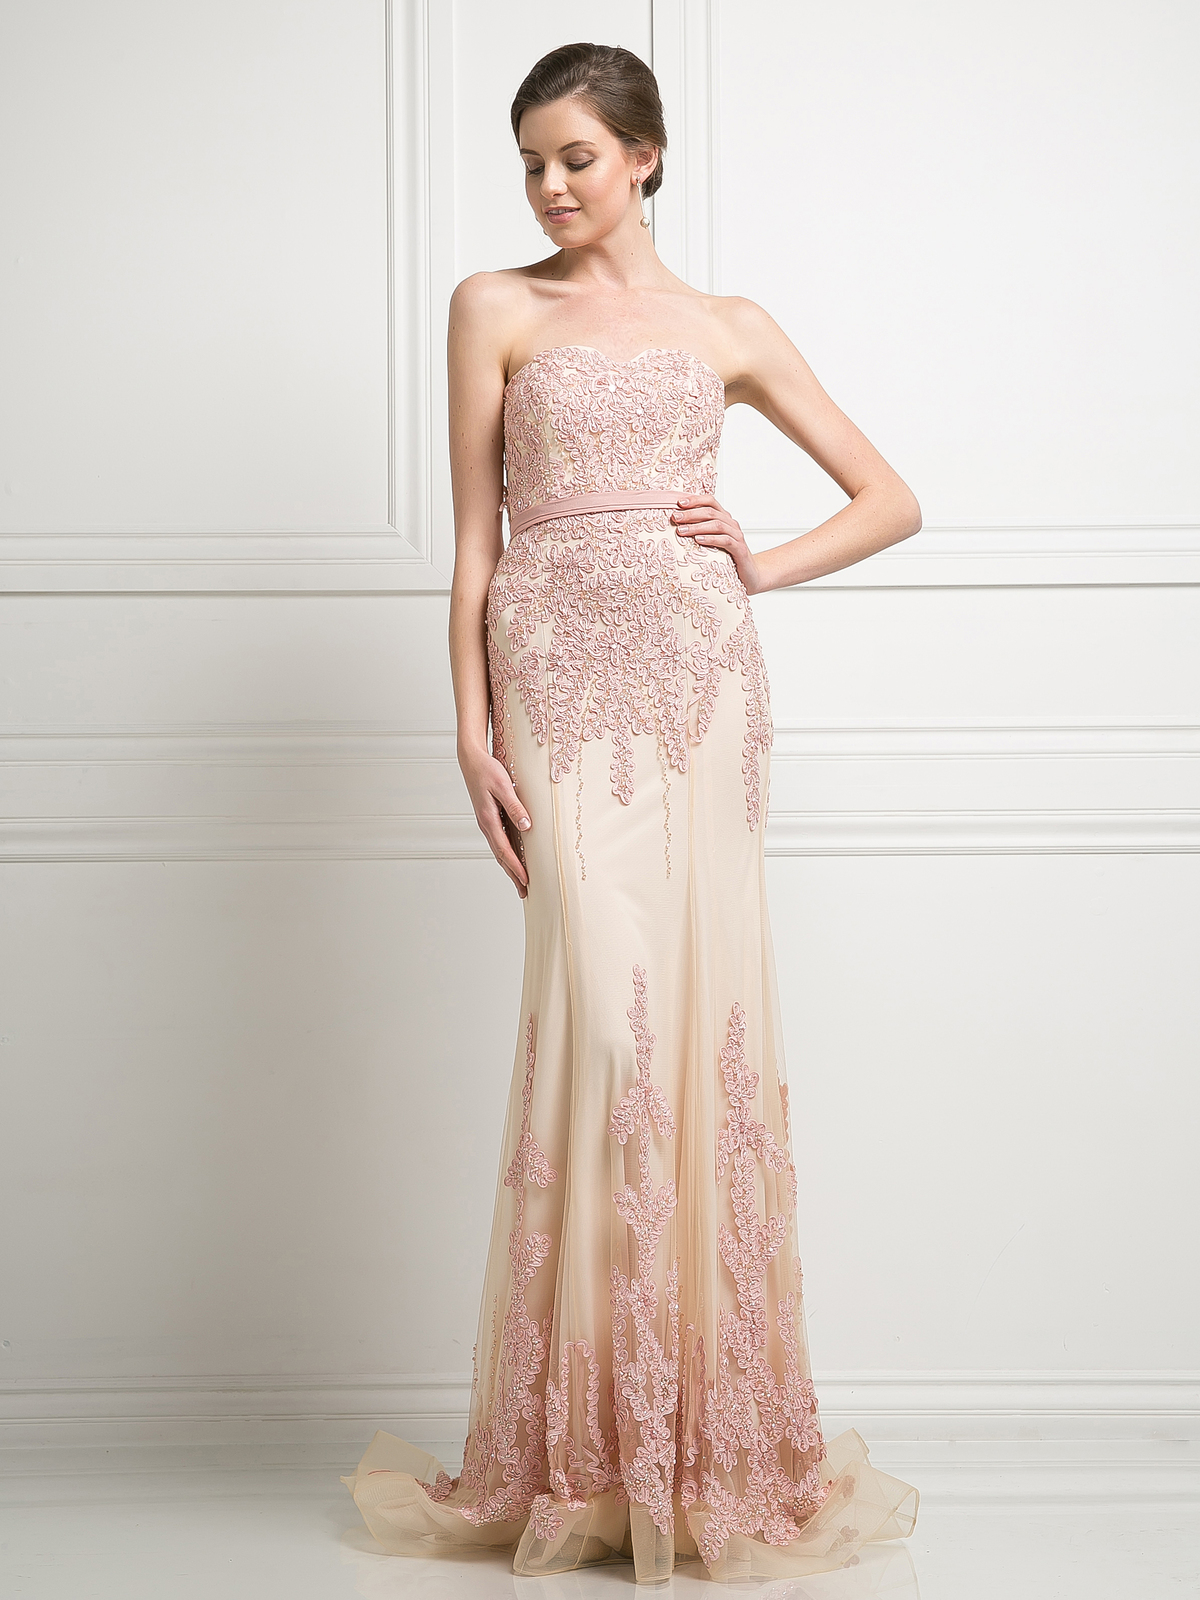 Sleeveless Embroidery Evening Gown with Belt | Sung Boutique L.A.